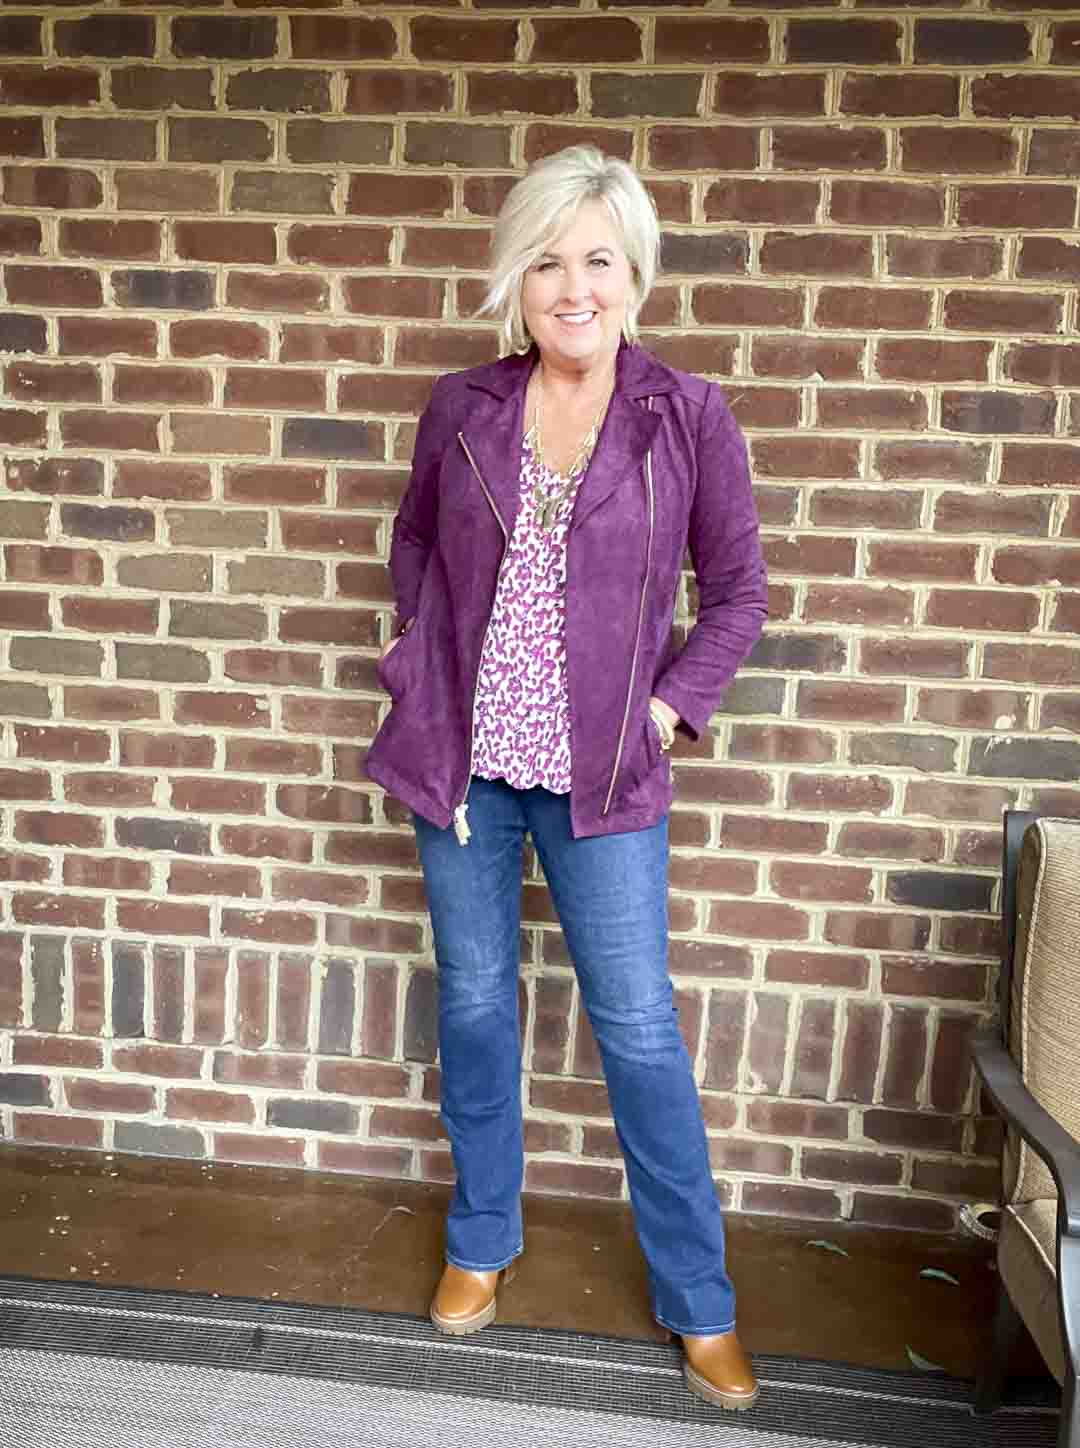 Over 40 fashion blogger, Tania Stephens is wearing a plum moto jacket, a printed camisole, bootcut jeans, and Tory Burch lug boots